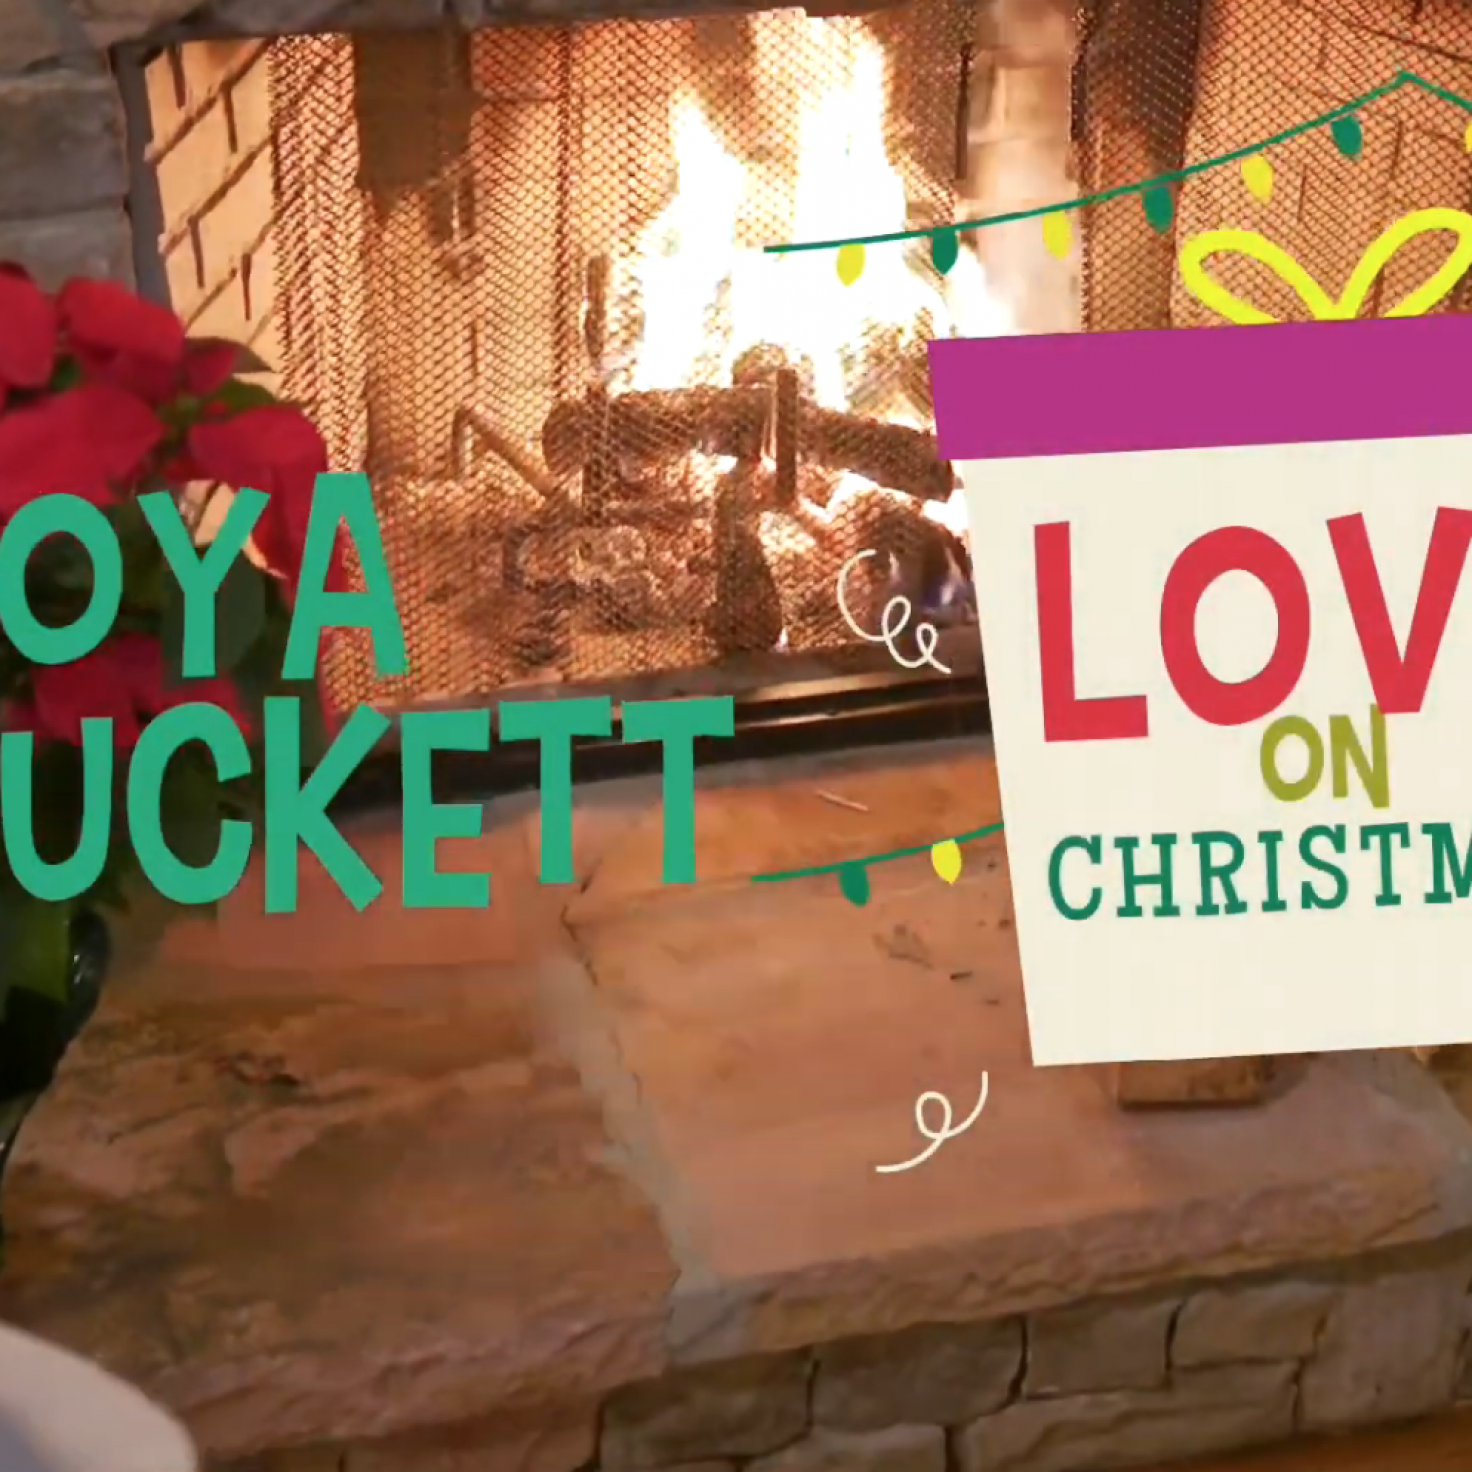 Exclusive: LeToya Luckett Only Needs One Thing In New 'Love On Christmas' Video